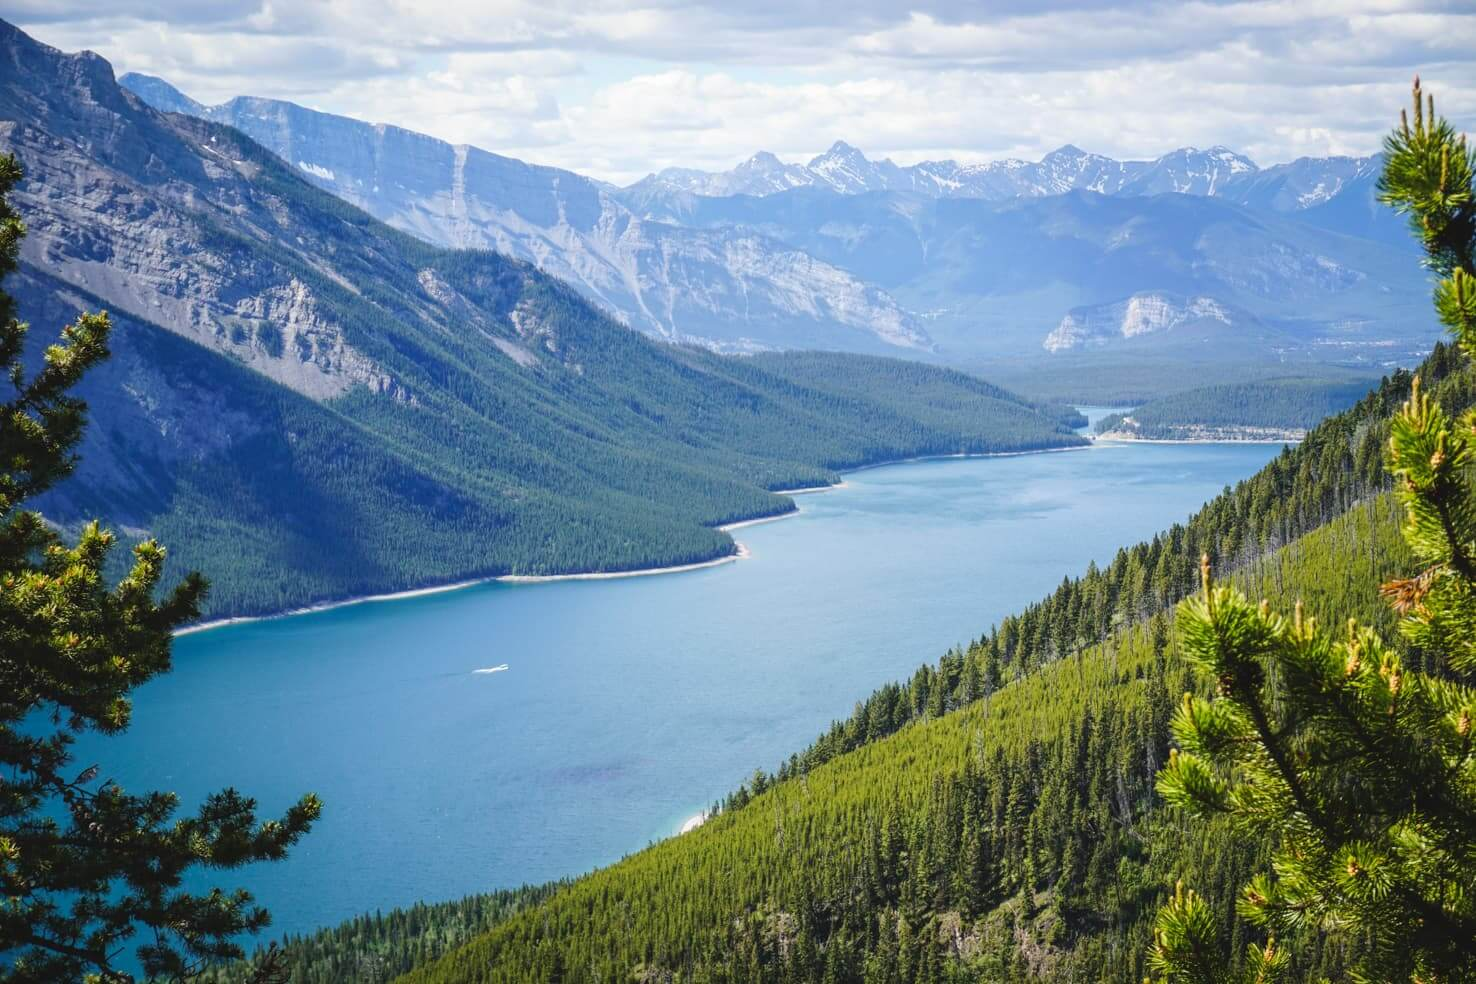 Aylmer Lookout Hike & Bike Trip, Banff National Park